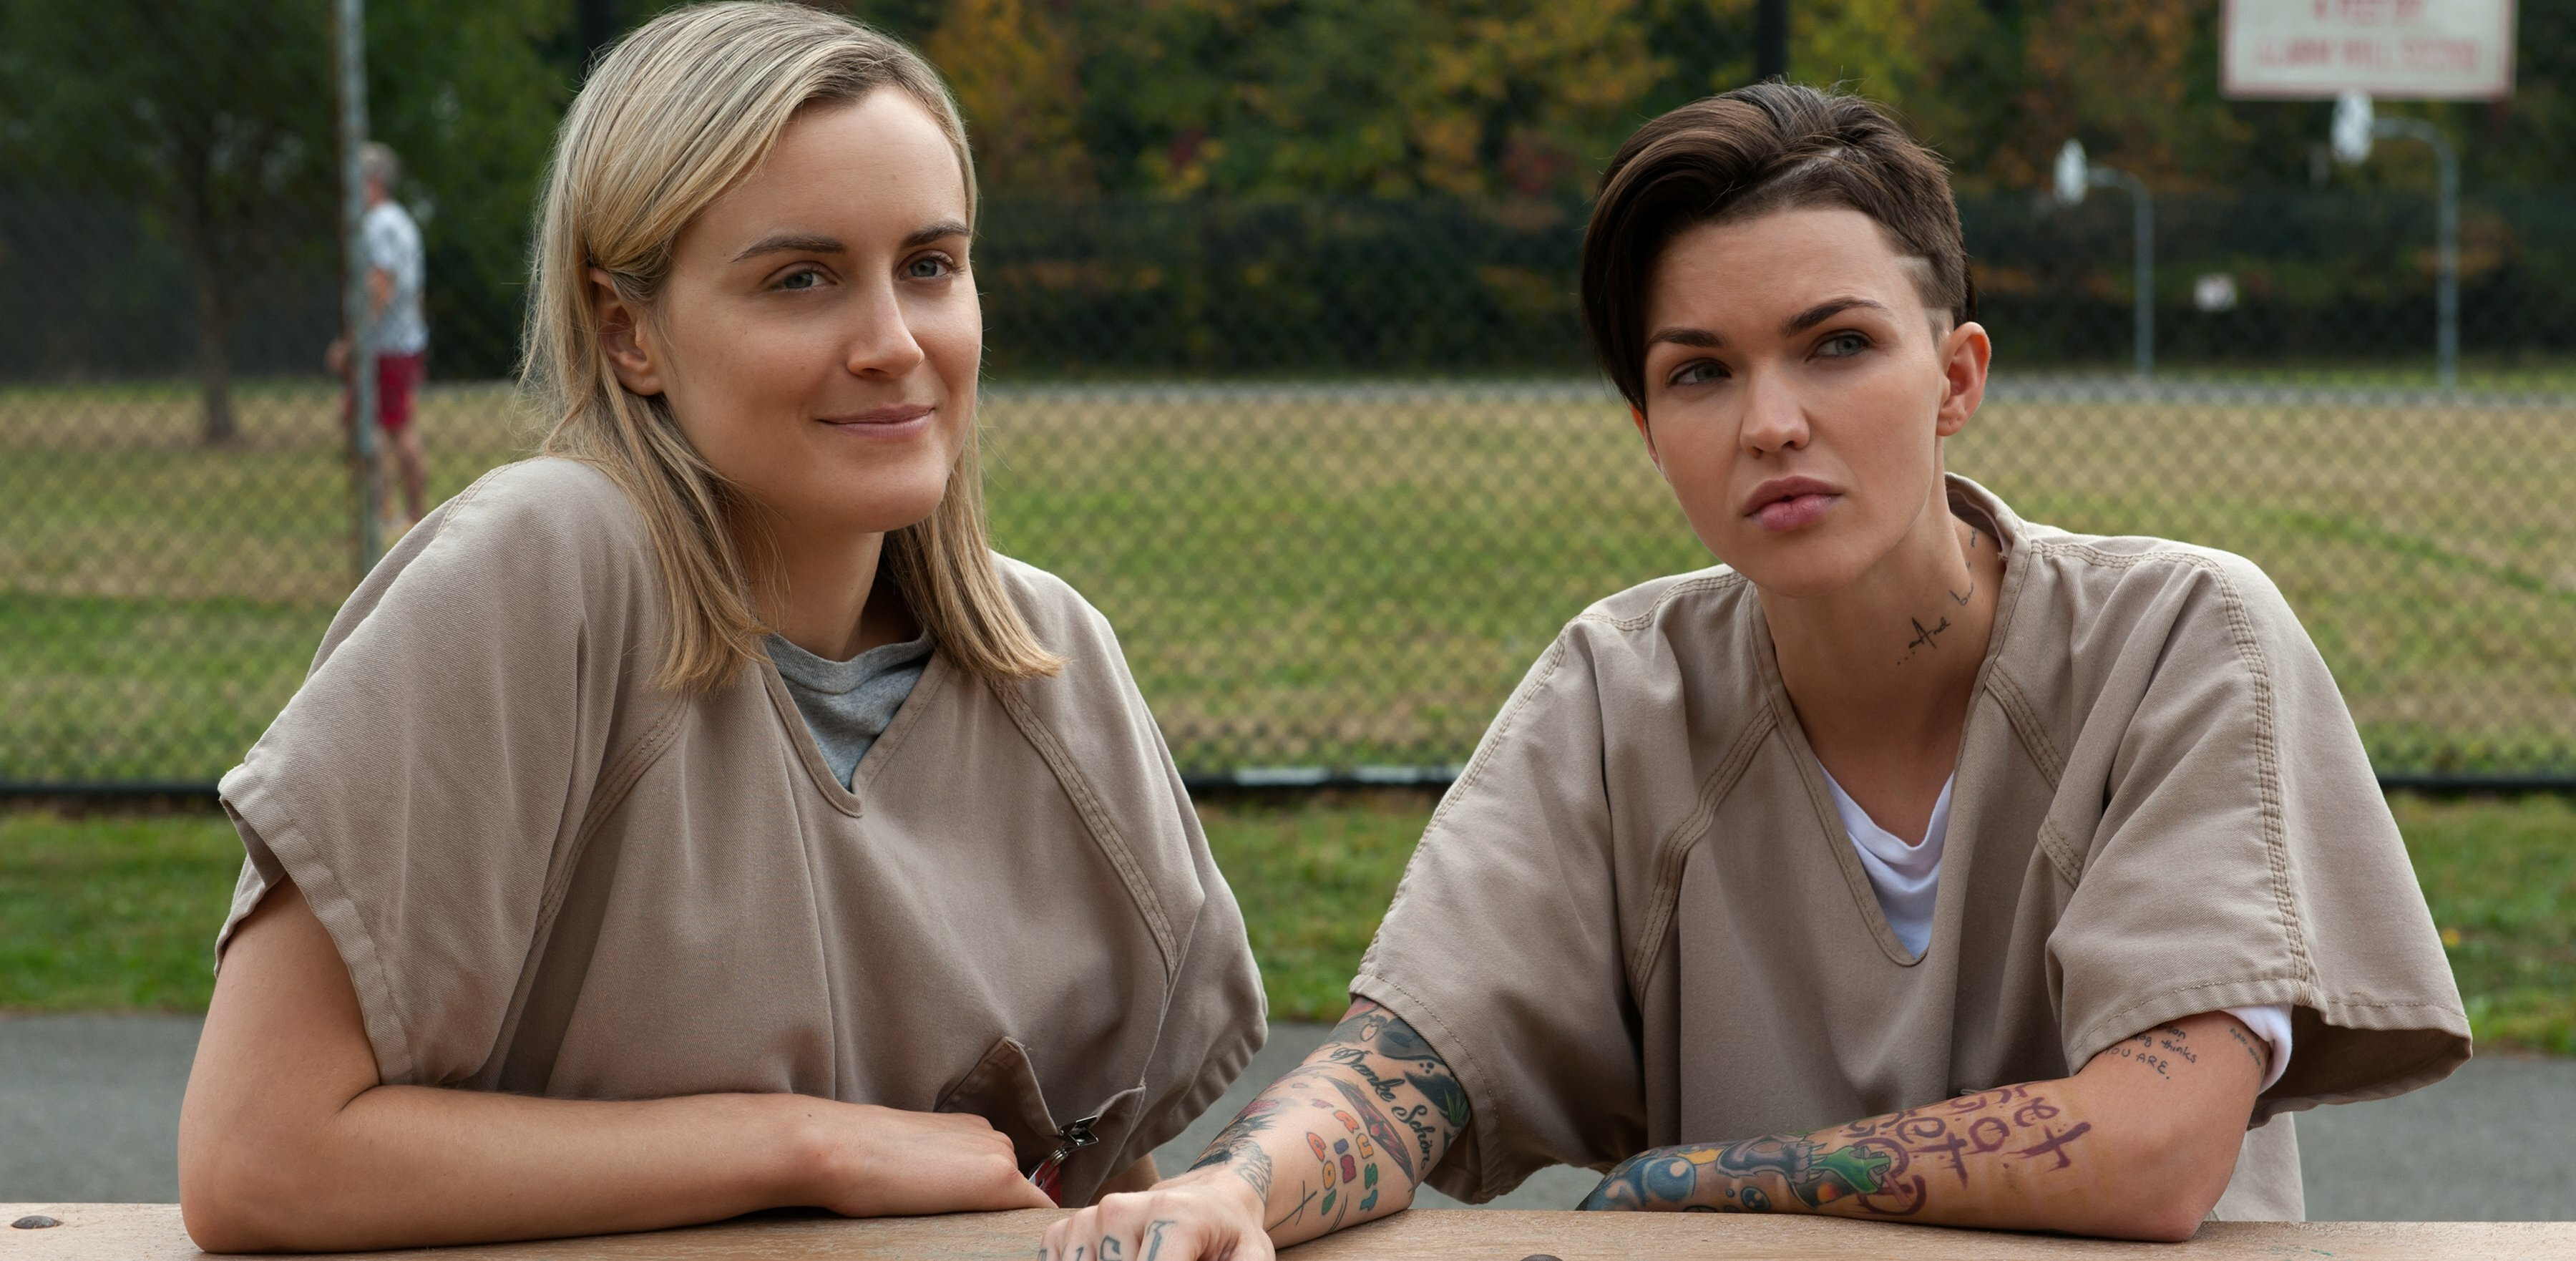 4 Career Lessons From Orange Is the New Black That You Didn't Even Know You Learned